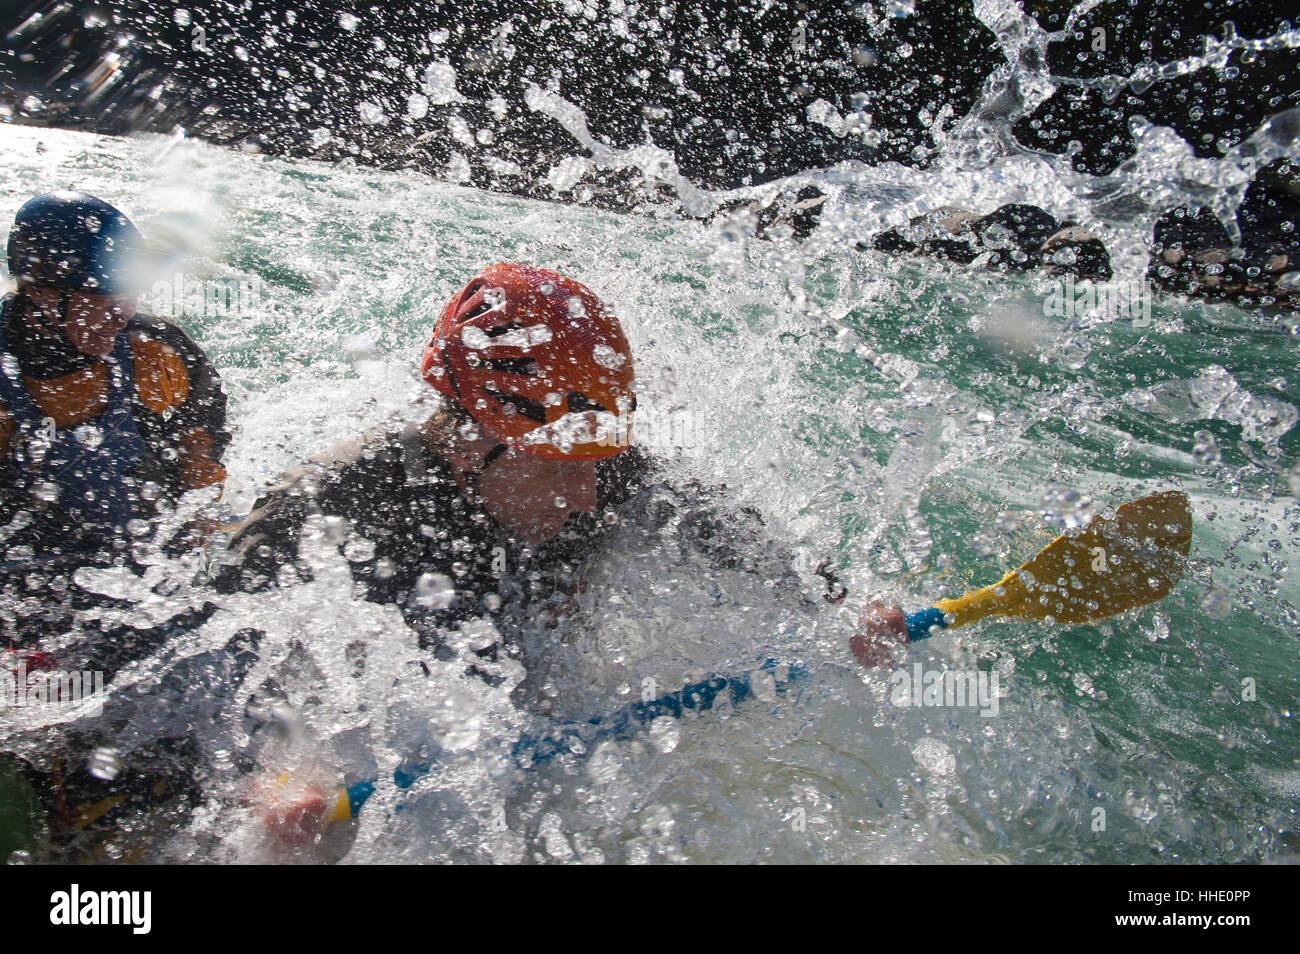 A rafting expedition down the Karnali River, west Nepal - Stock Image